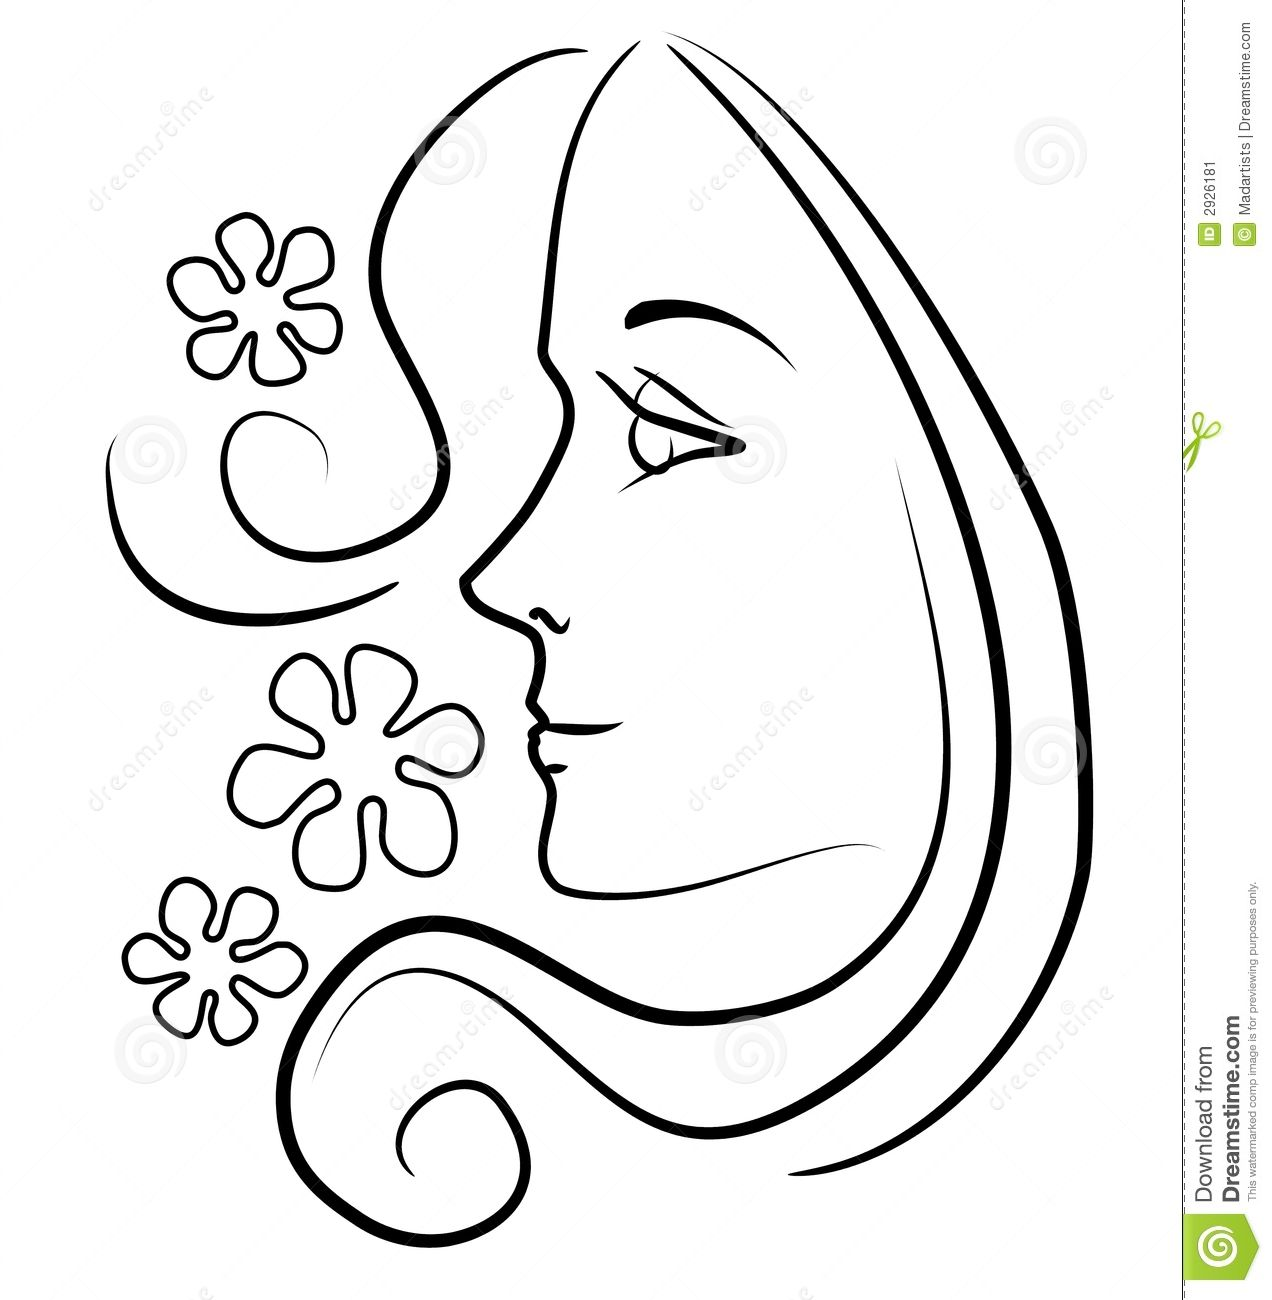 clip art of a girl face.